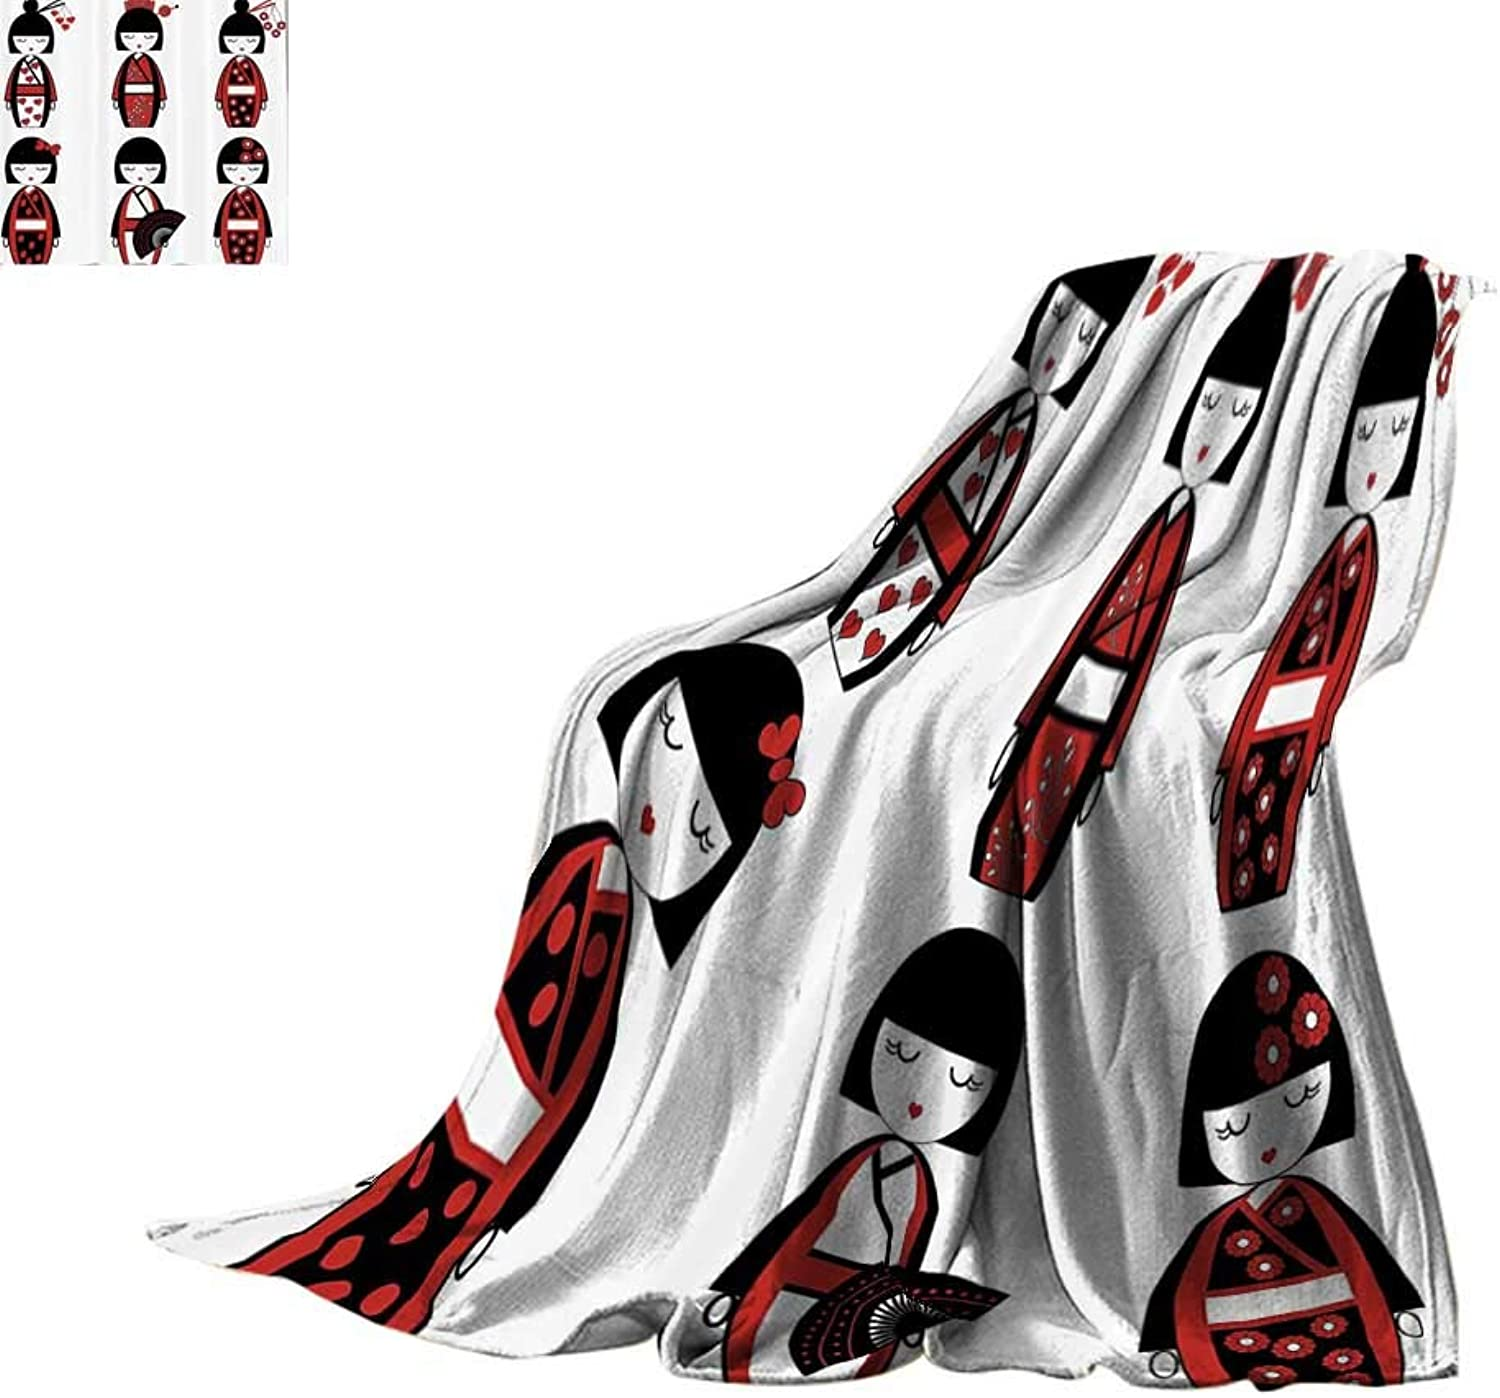 Cozy Flannel Blanket Girly Decor,Unique Asian Geisha Dolls in Folkloric Costumes Outfits and Hair Sticks Kimono Art Image,Black Red Blanket for Sofa Couch Bed Bed or Couch 60 x35